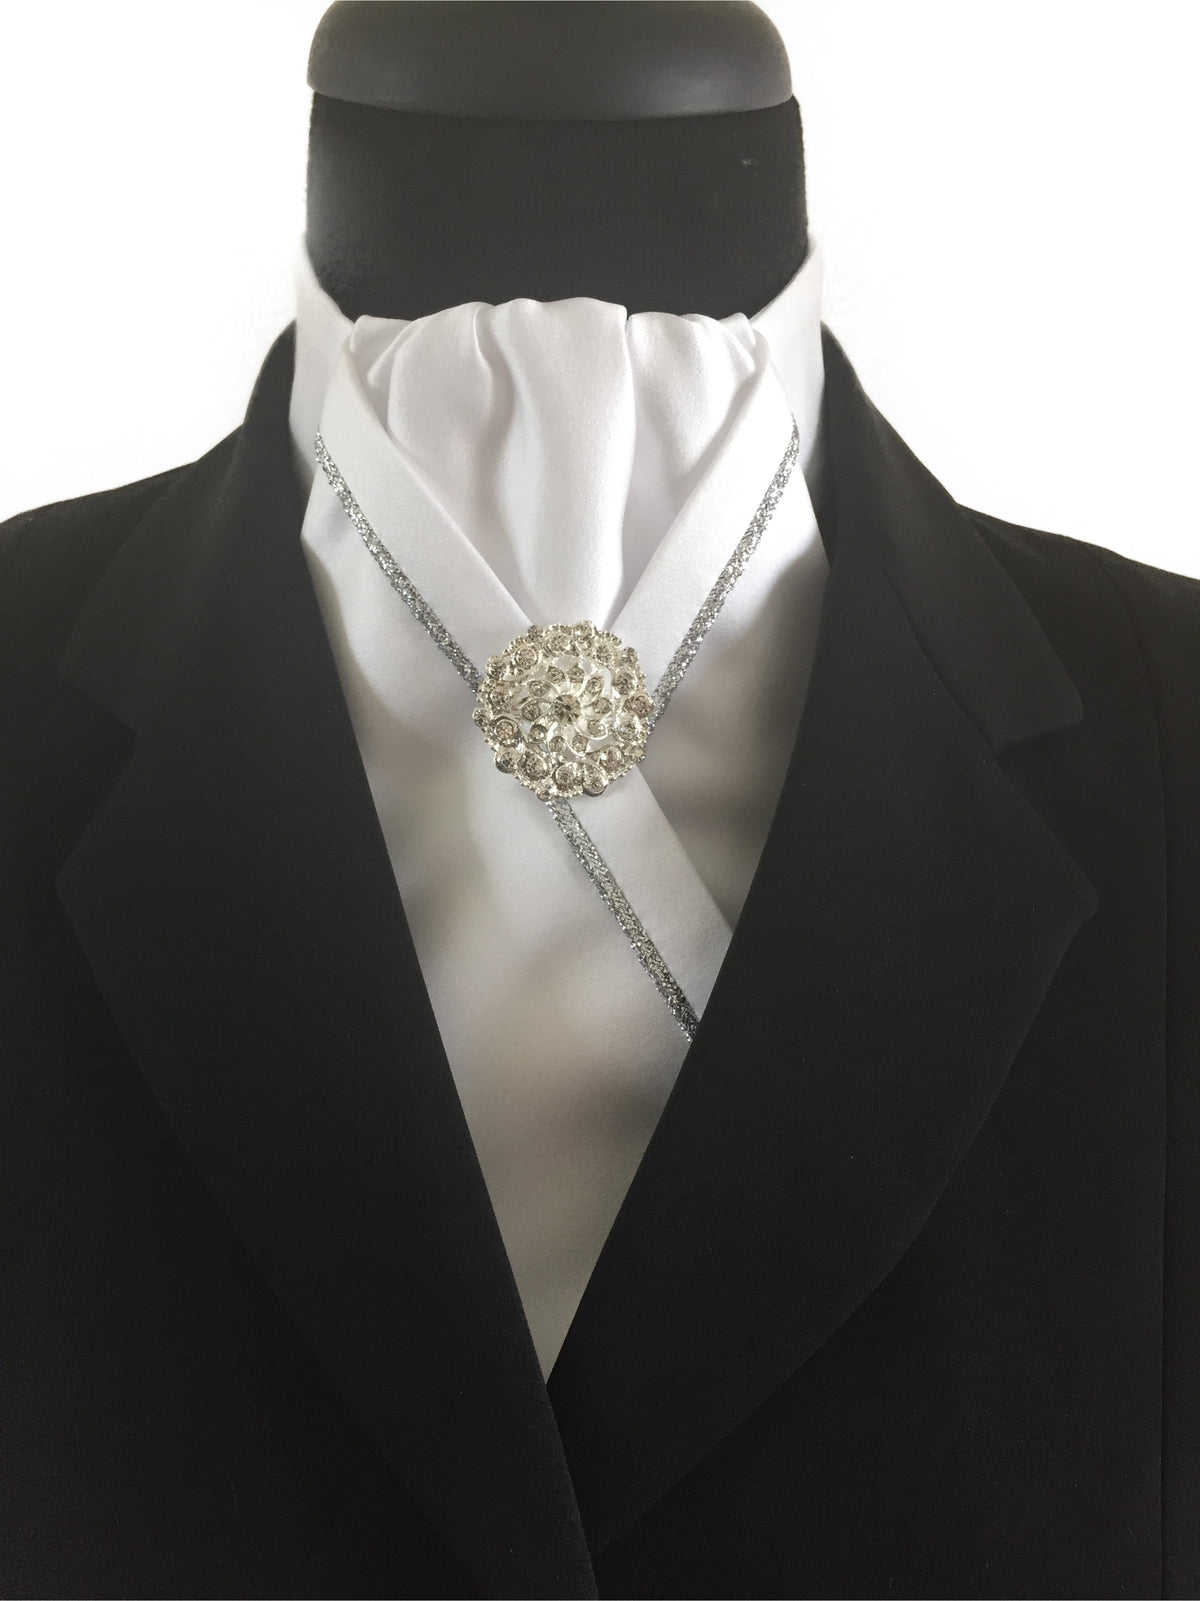 White Stock Tie with Silver Piping